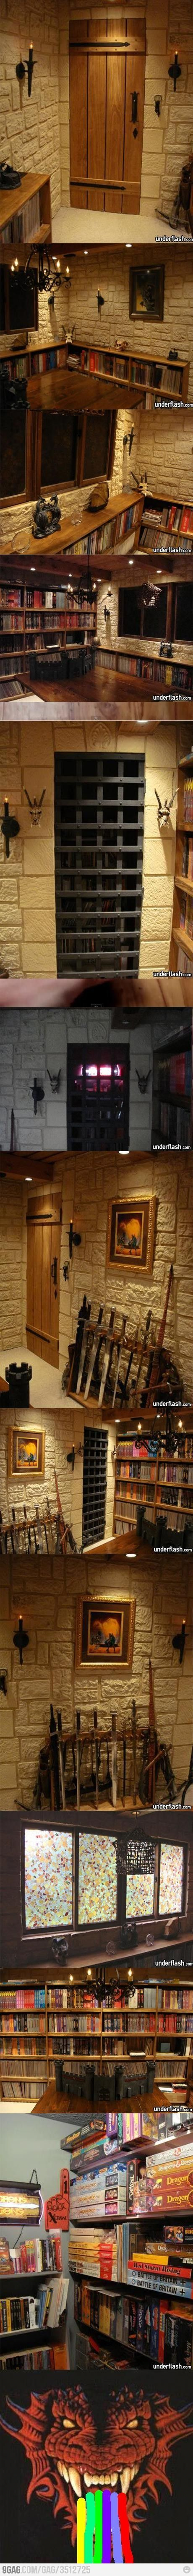 Rpg room!!!! WANT IT!!!! O.O